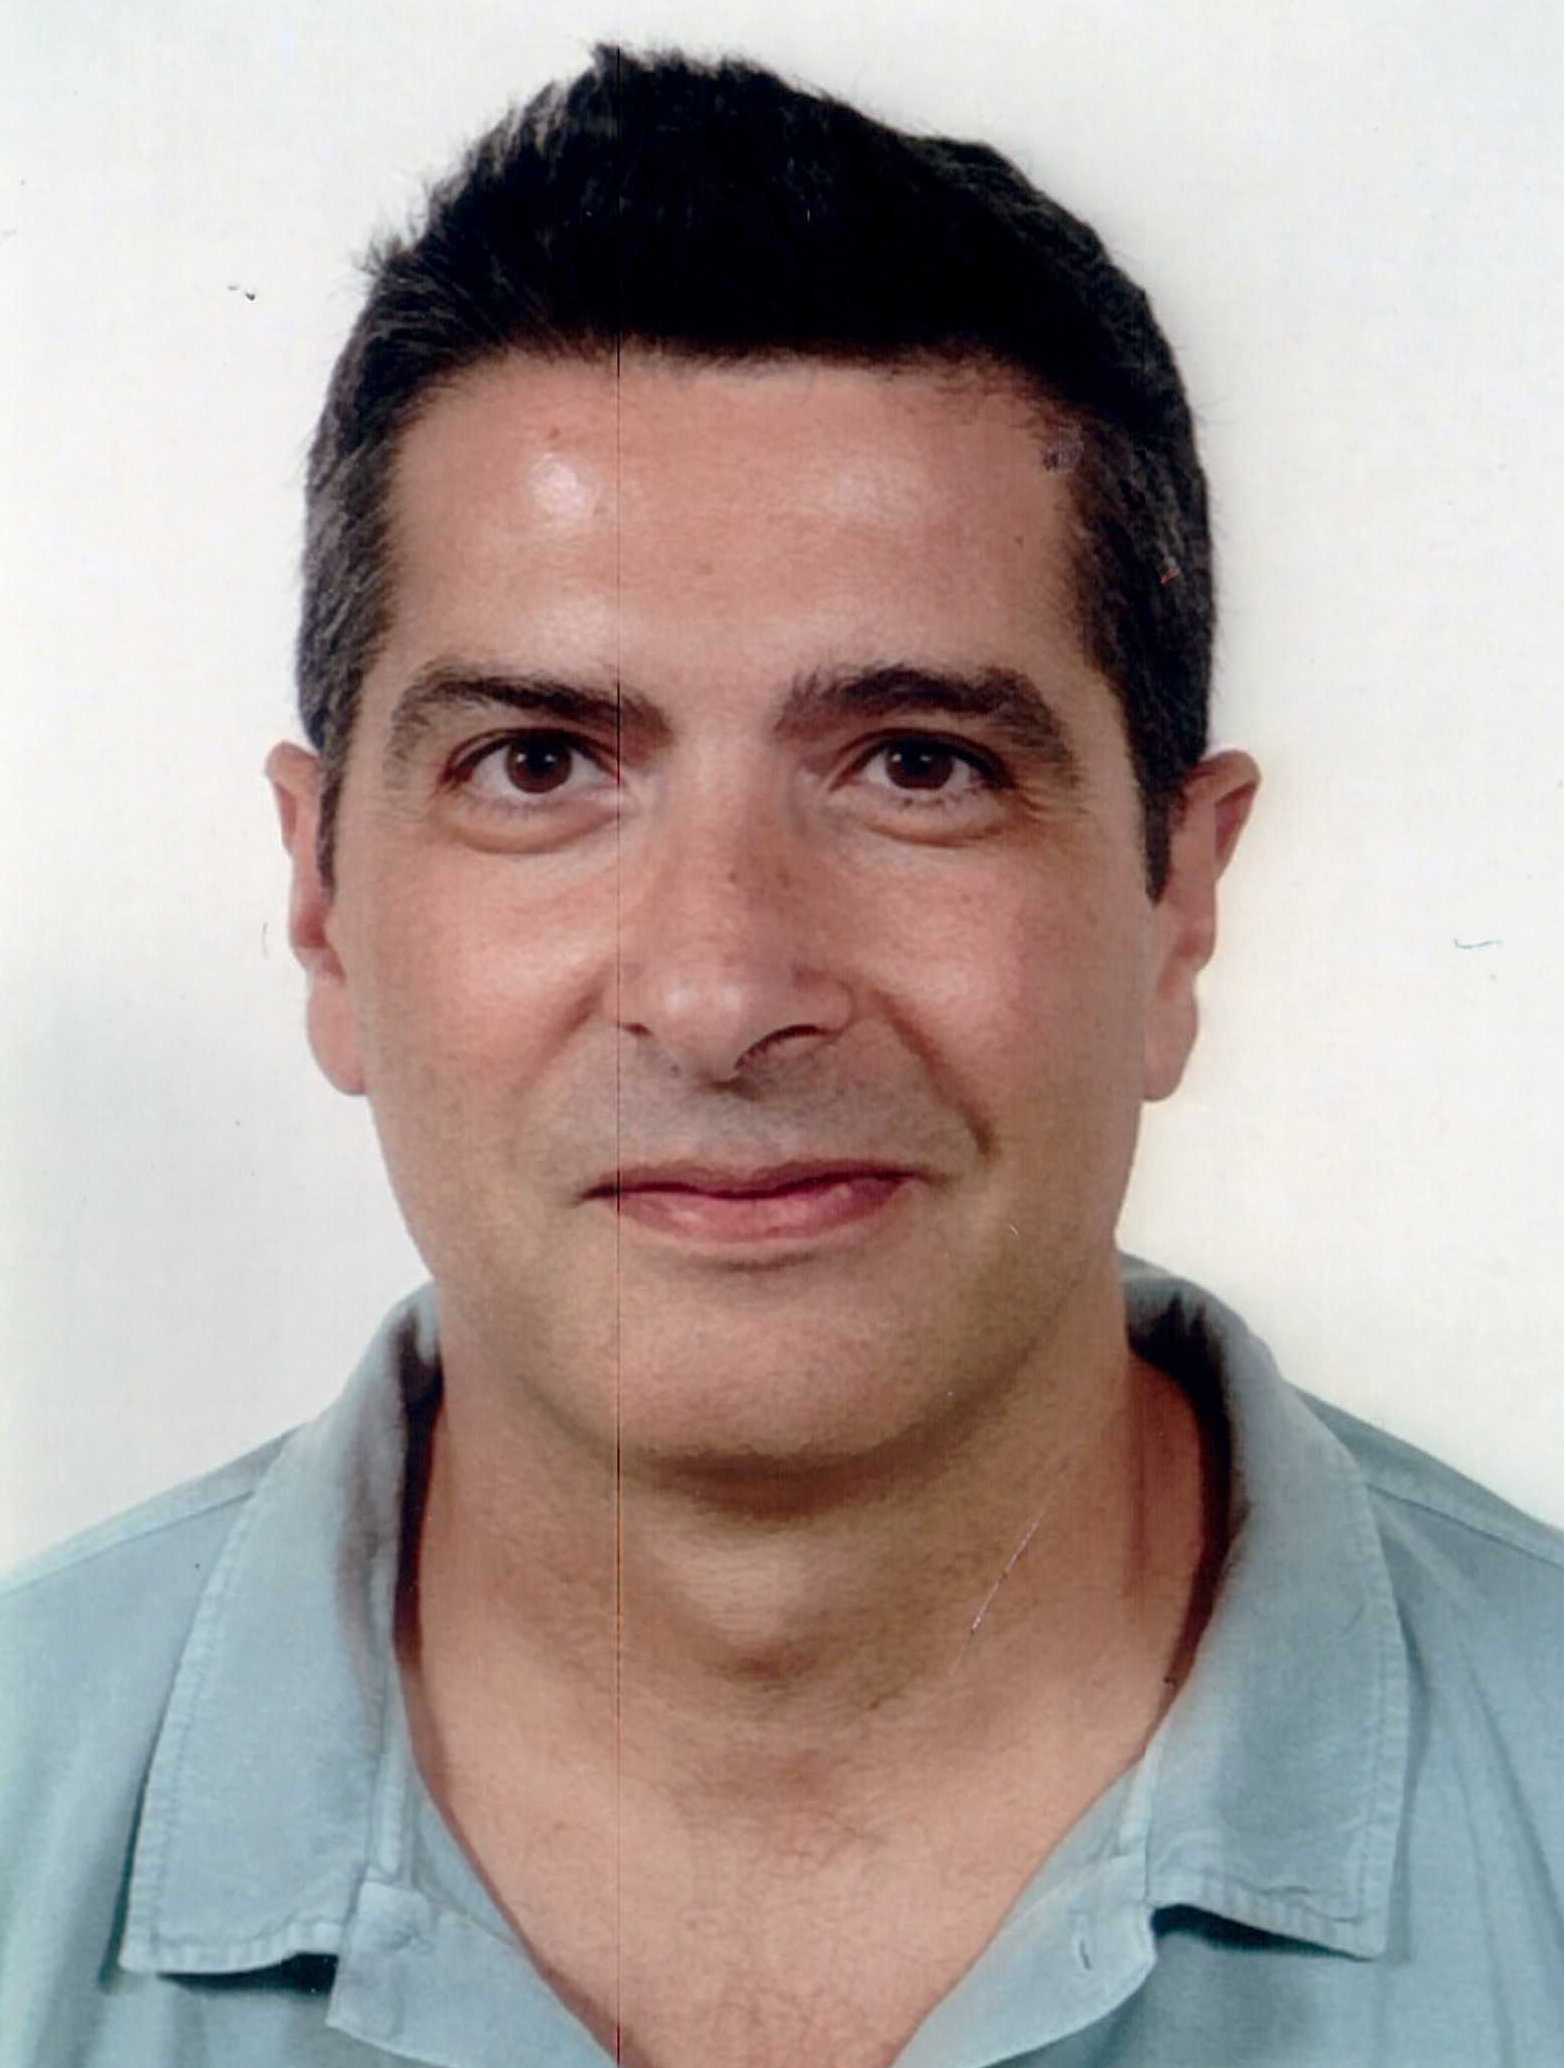 Francesco Cammarota